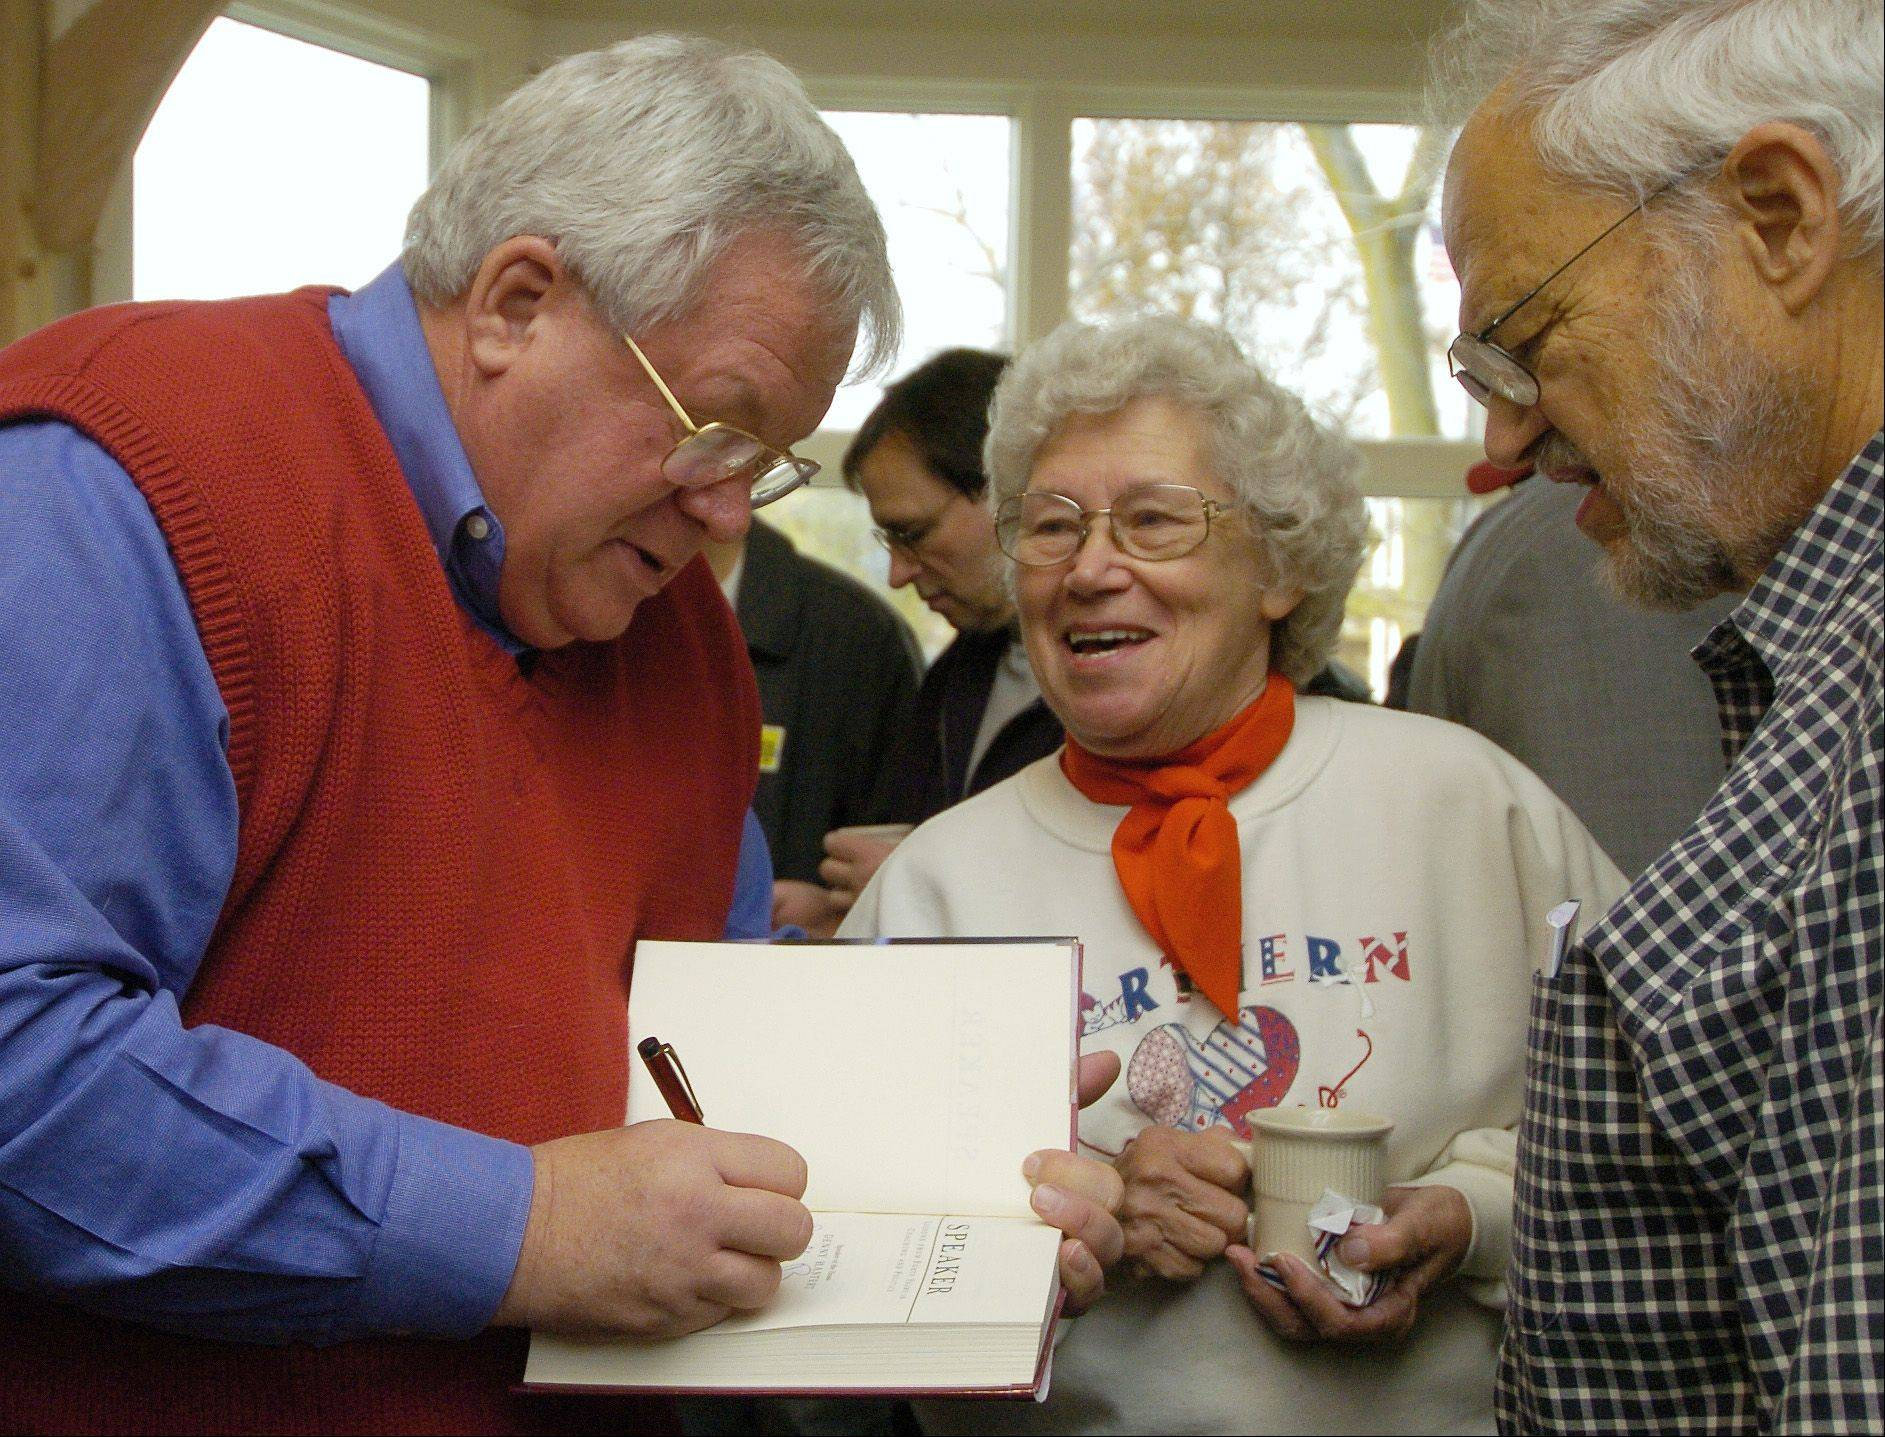 Fred Doederlein, right, and his wife, DeLoris, get an autographed copy of a book by former U.S. Speaker Dennis Hastert at a 2006 election rally in Geneva.